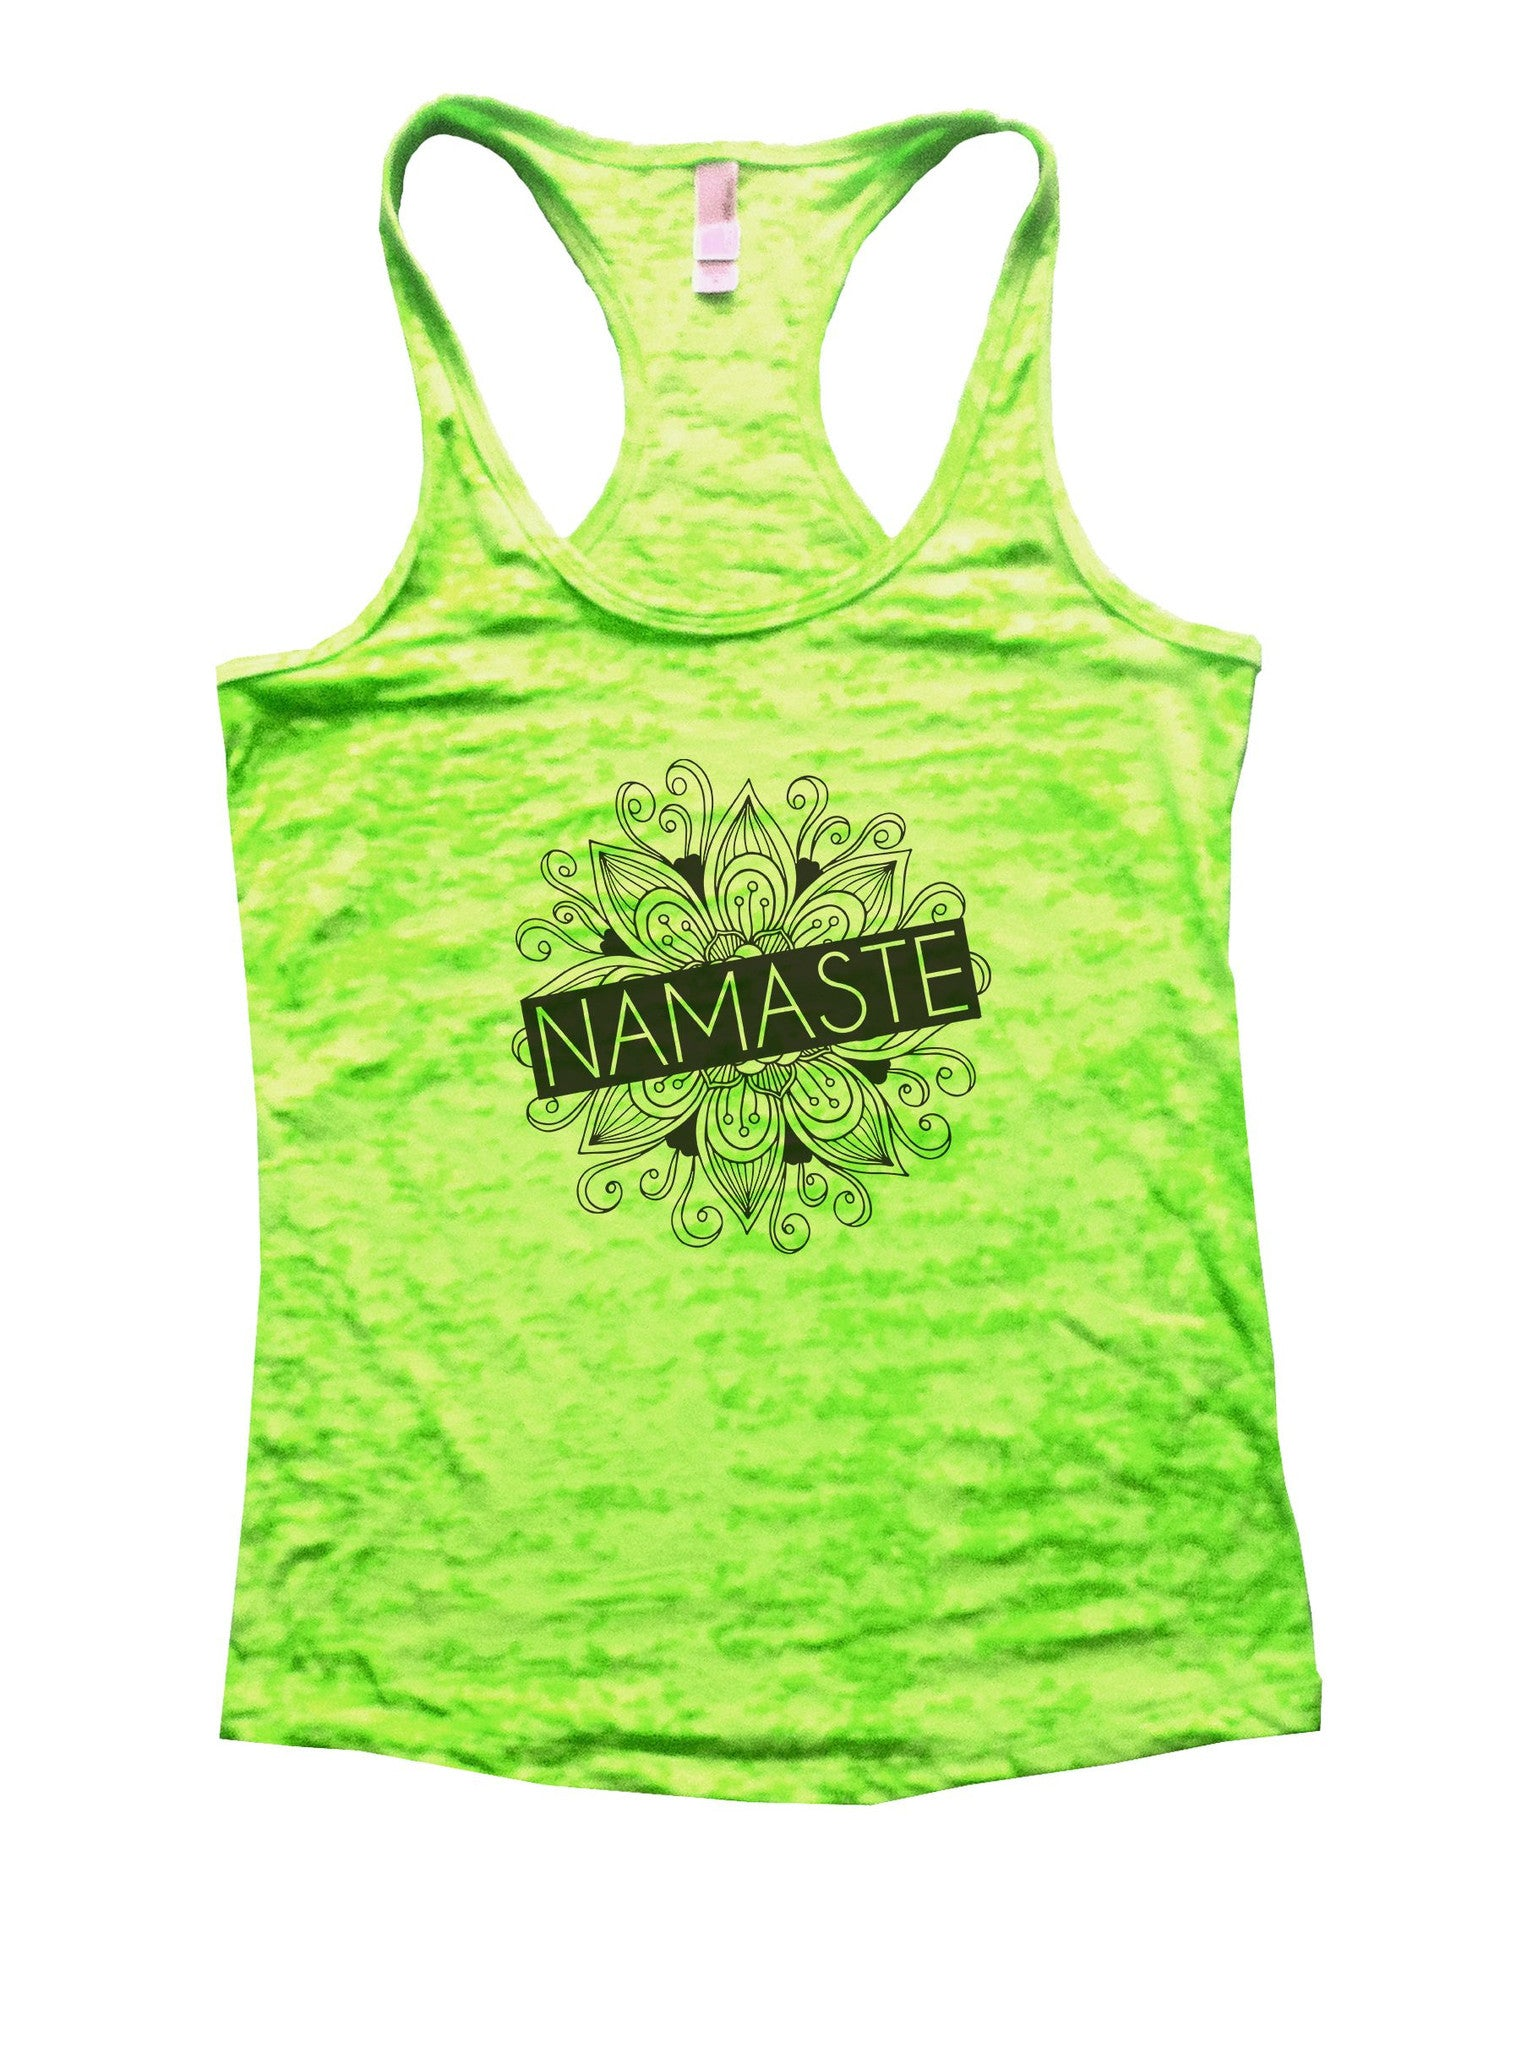 Namaste Burnout Tank Top By BurnoutTankTops.com - 1016 - Funny Shirts Tank Tops Burnouts and Triblends  - 1